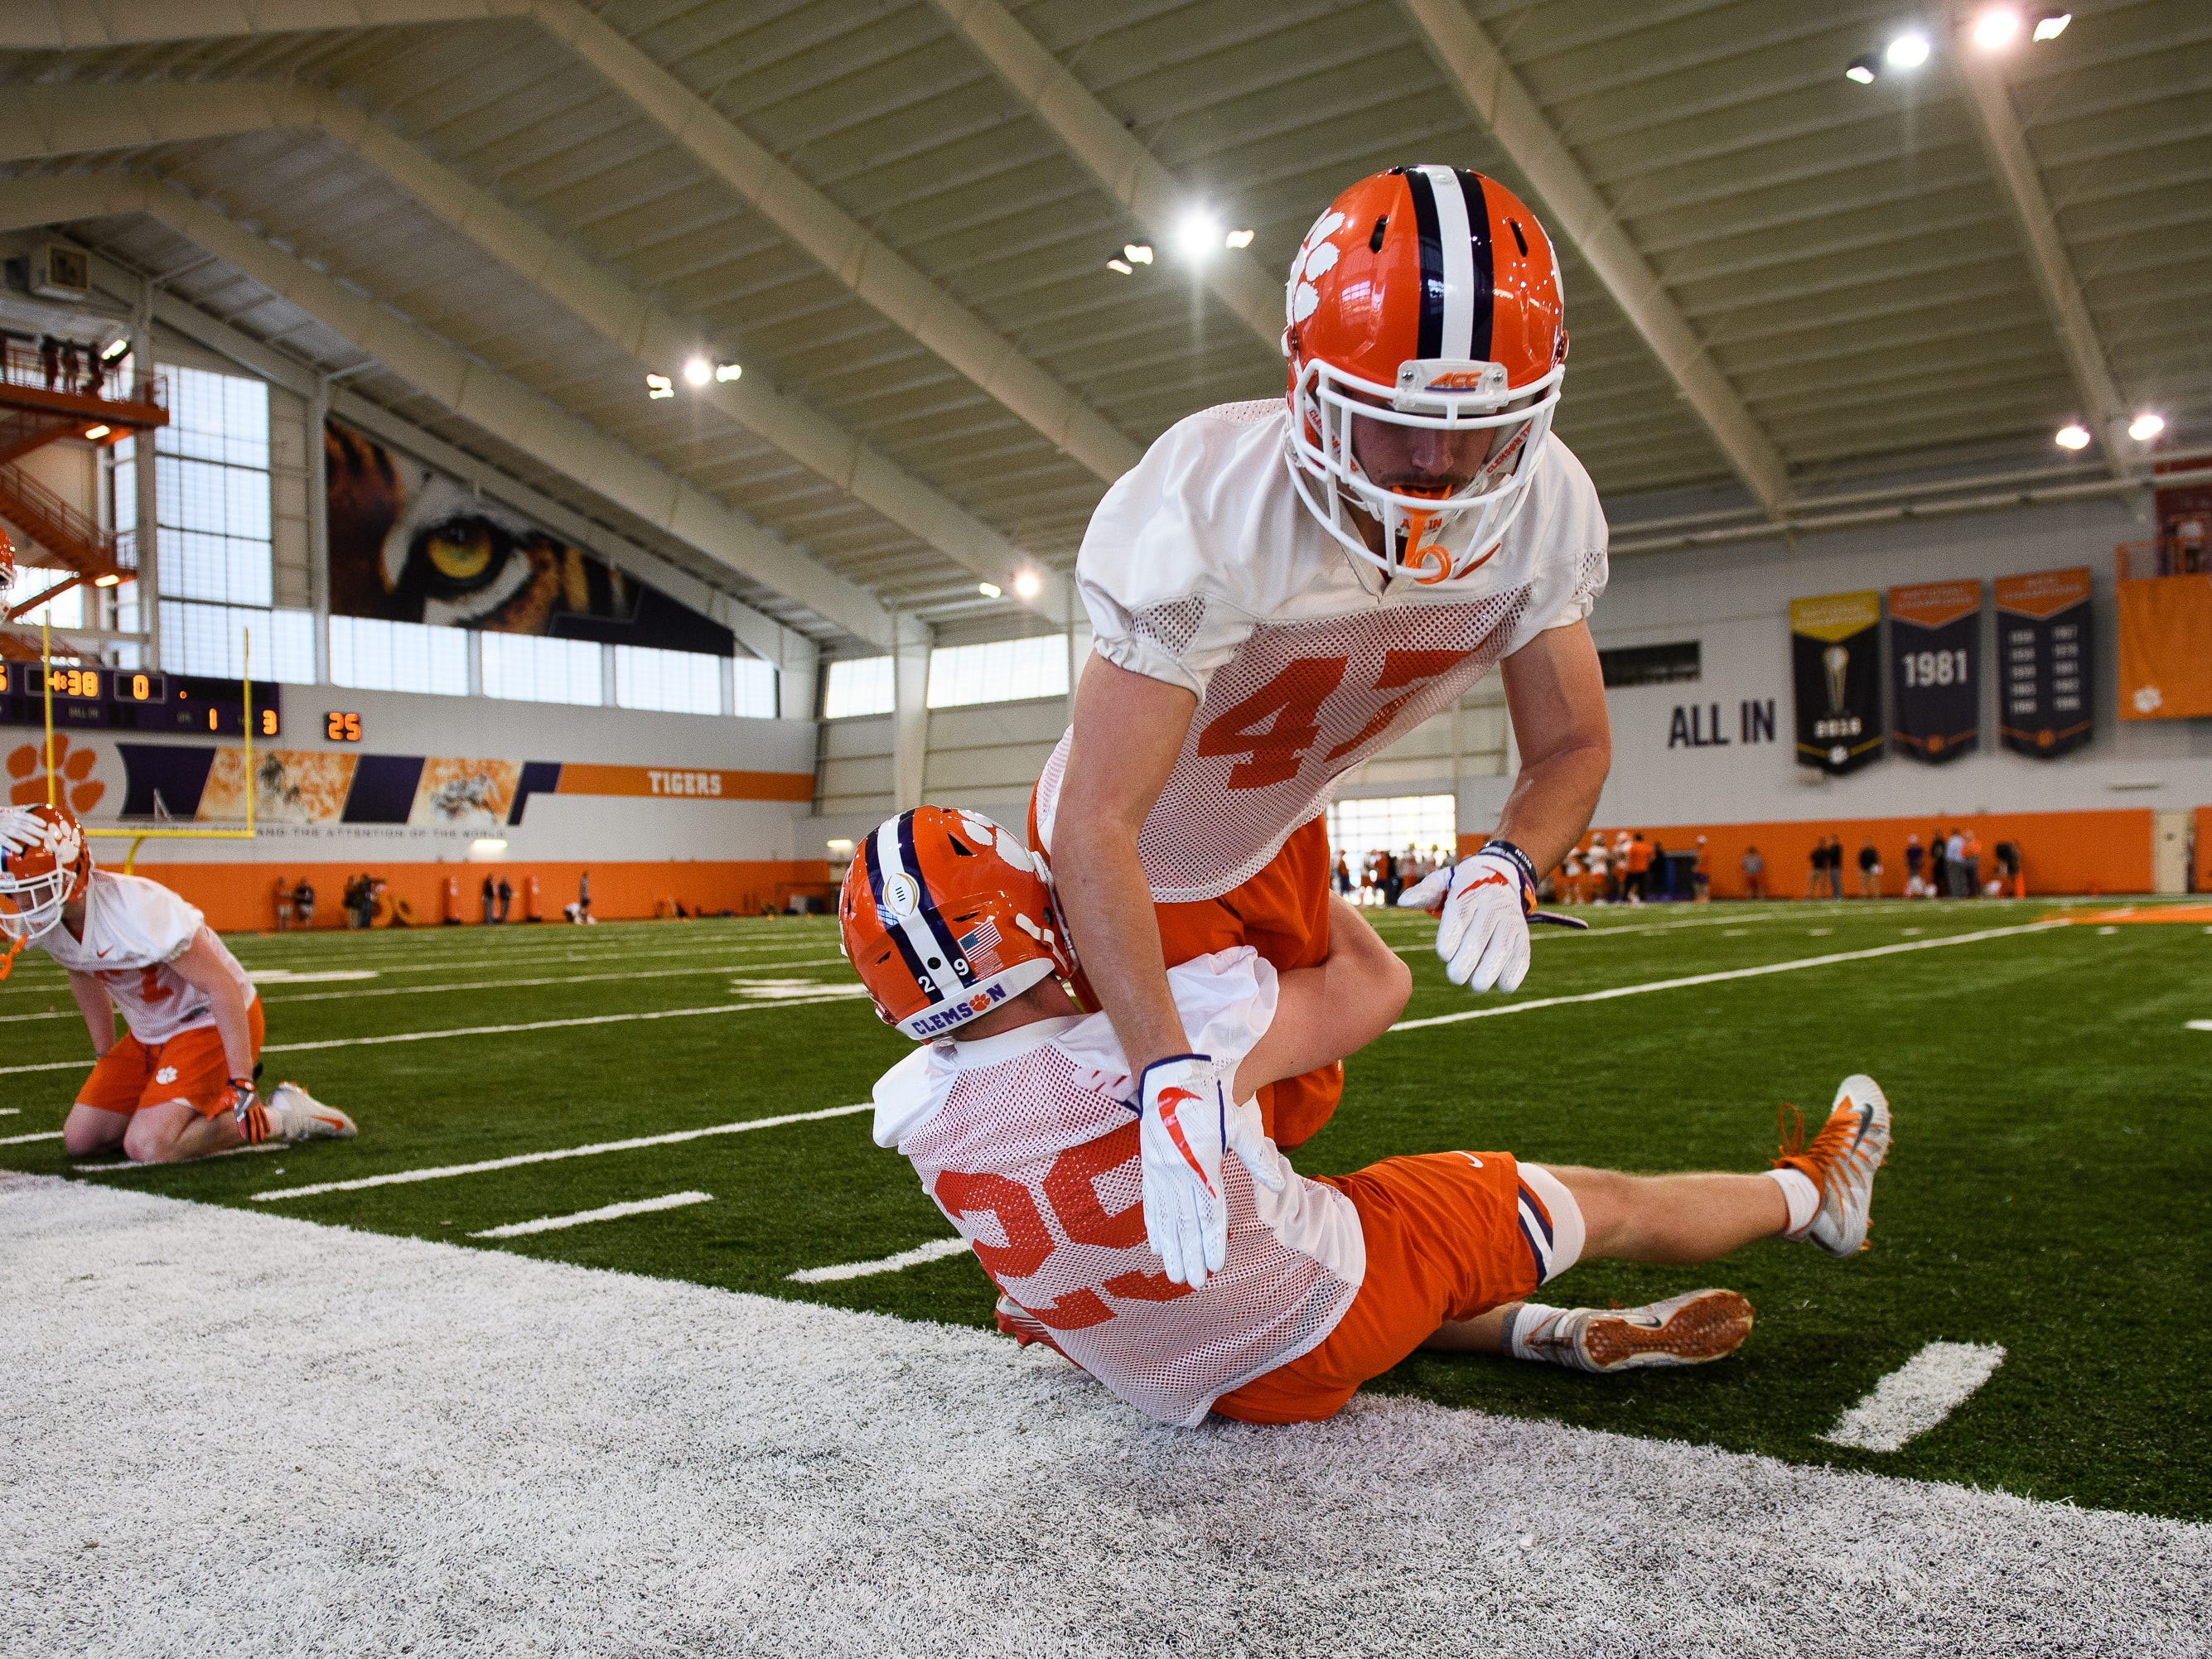 Clemson tight end J.C. Chalk (25) and linebacker James Skalski (47) go through drills during practice at the Allen Reeves Football Complex on Wednesday, Feb. 27, 2019.